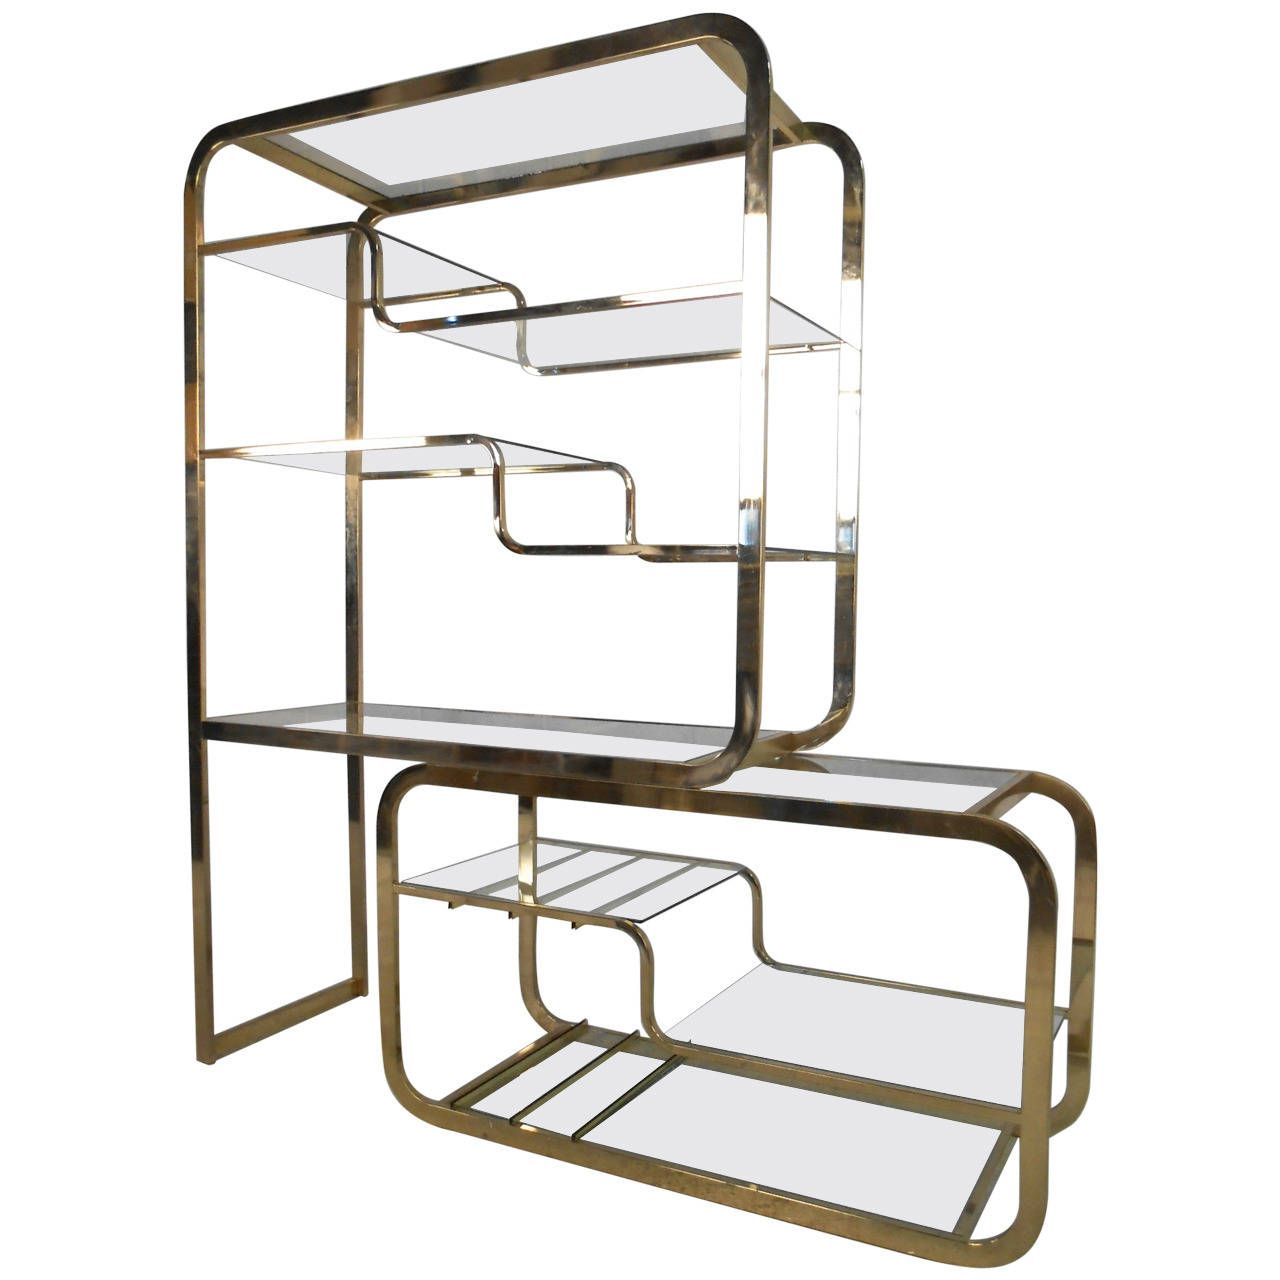 Unique Mid Century Modern Milo Baughman For DIA Brass U0026 Glass Etagere